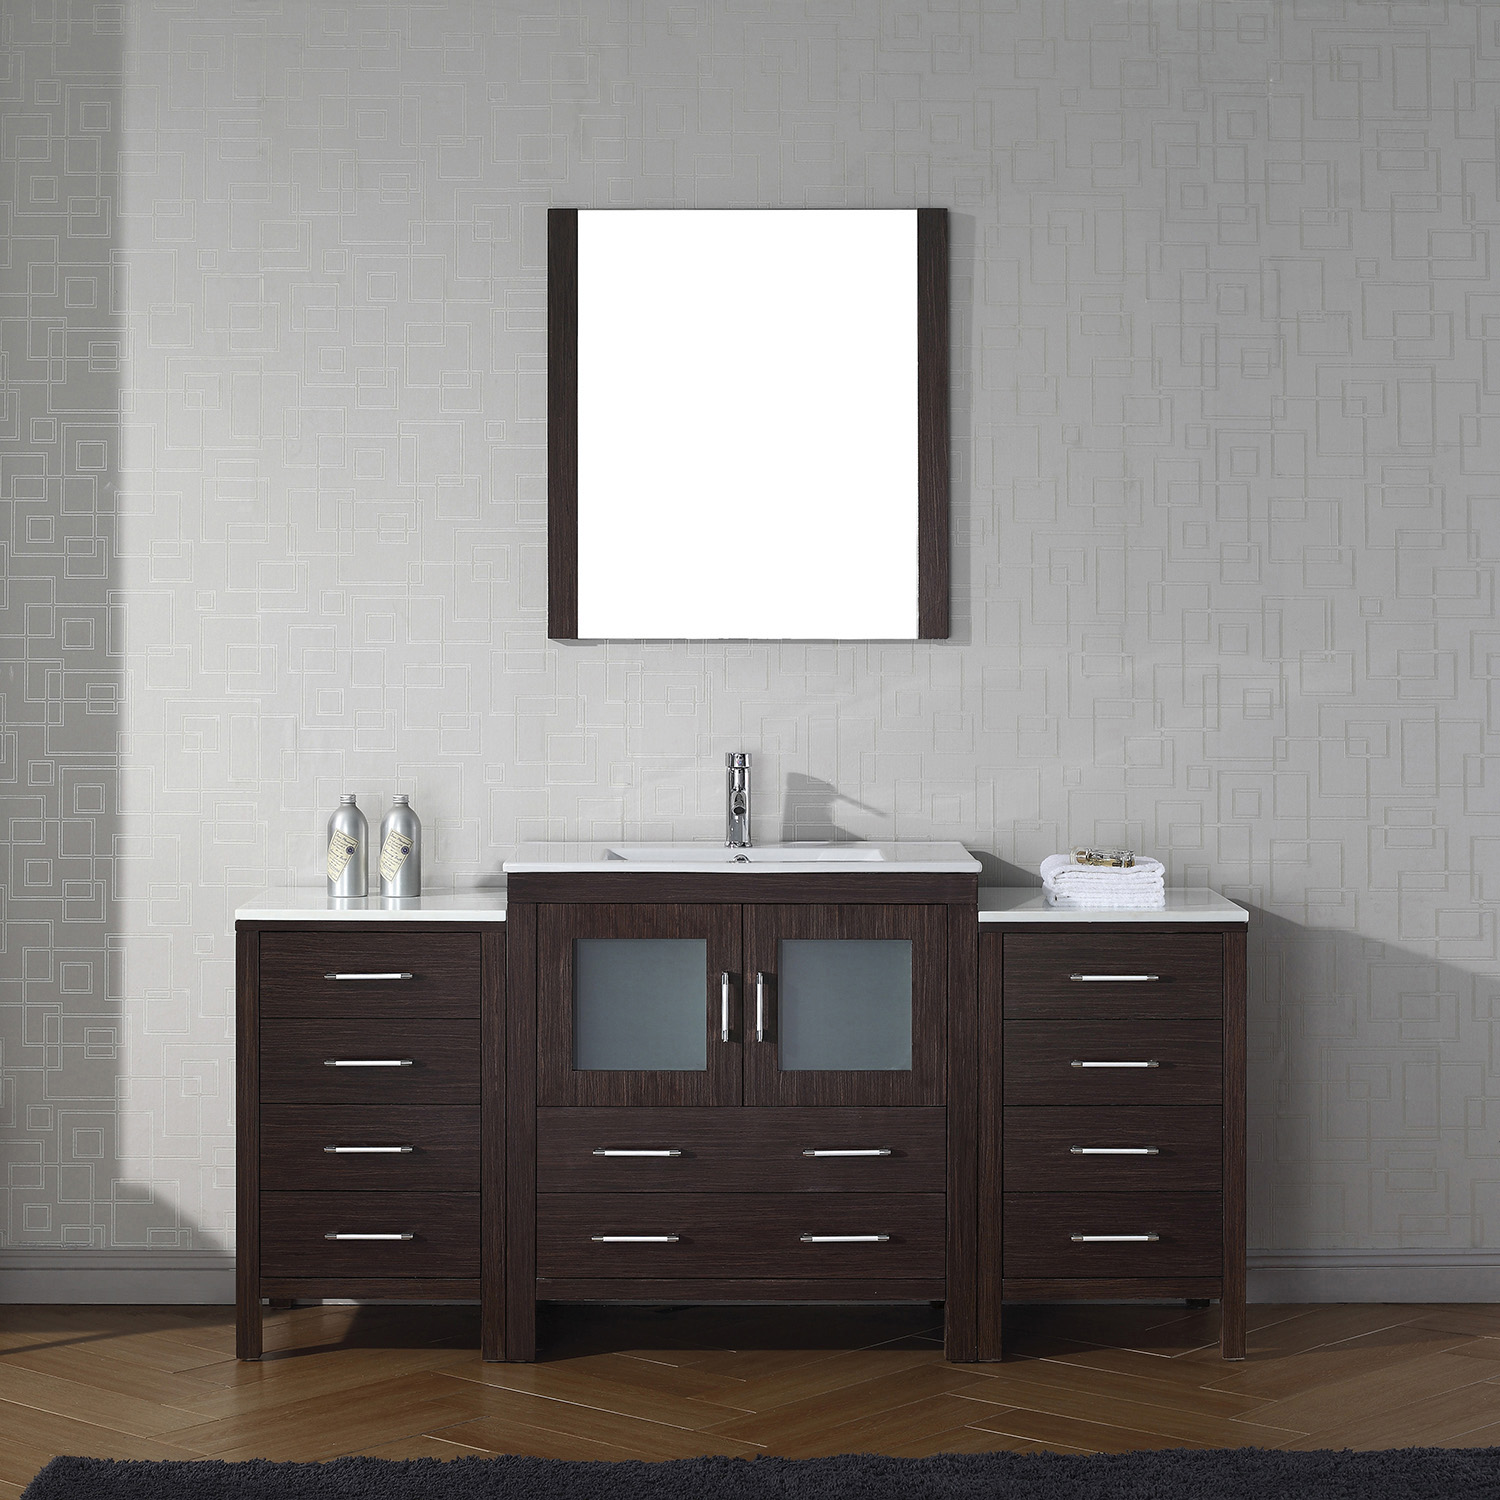 "68"" Single Bath Vanity in Espresso with Slim White Ceramic Top and Square Sink with Polished Chrome Faucet and Mirror"